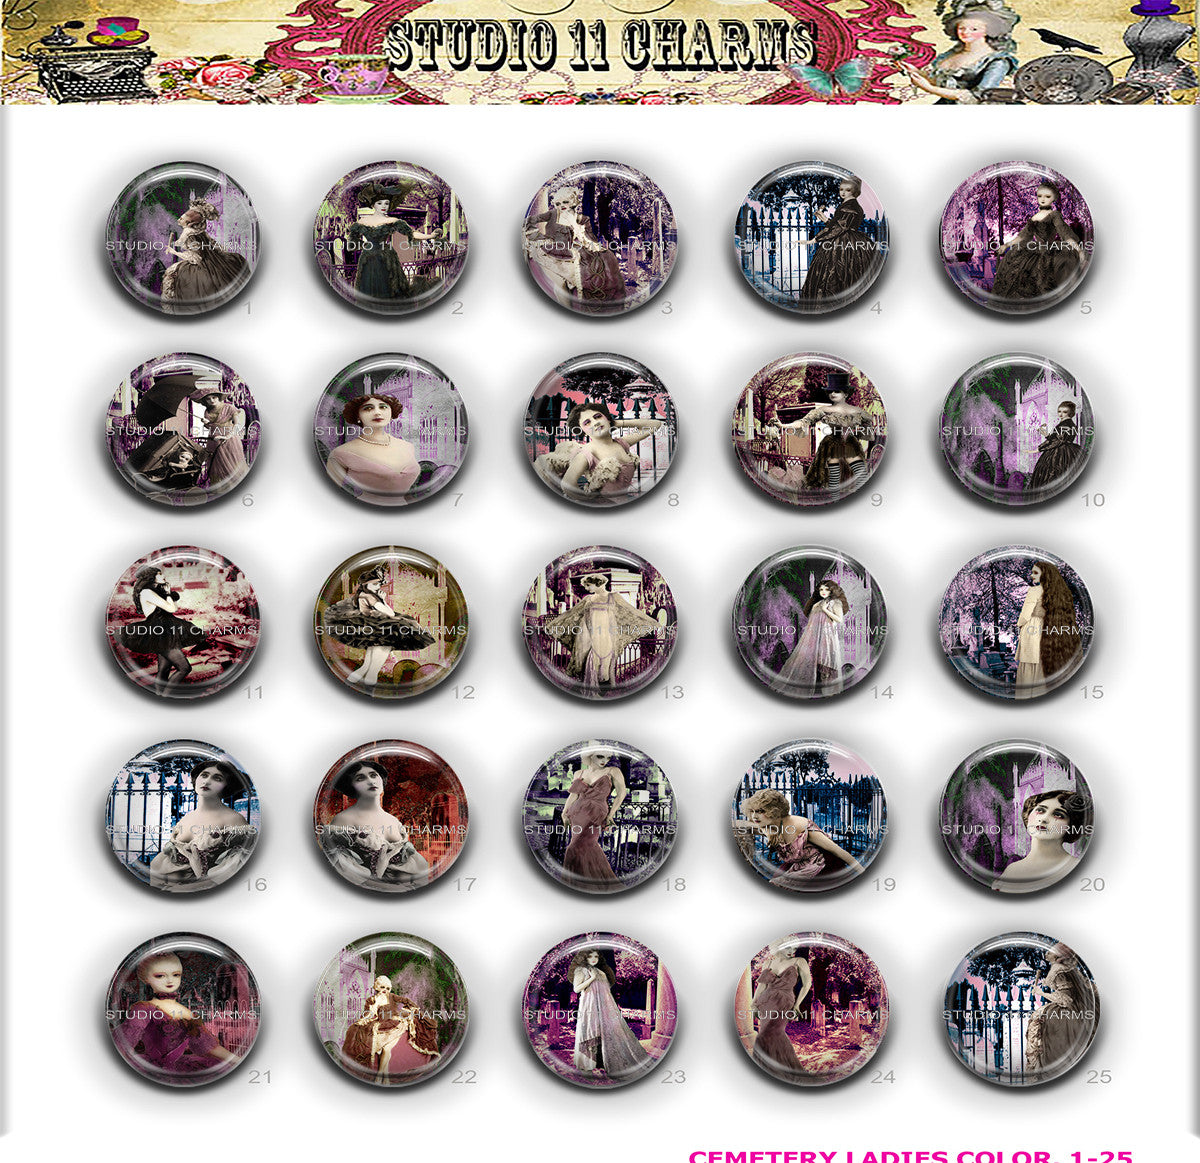 25pcs 25mm 1 inch Bottle Cap Resin Cameo Cabochon. Cemetery Ladies 1